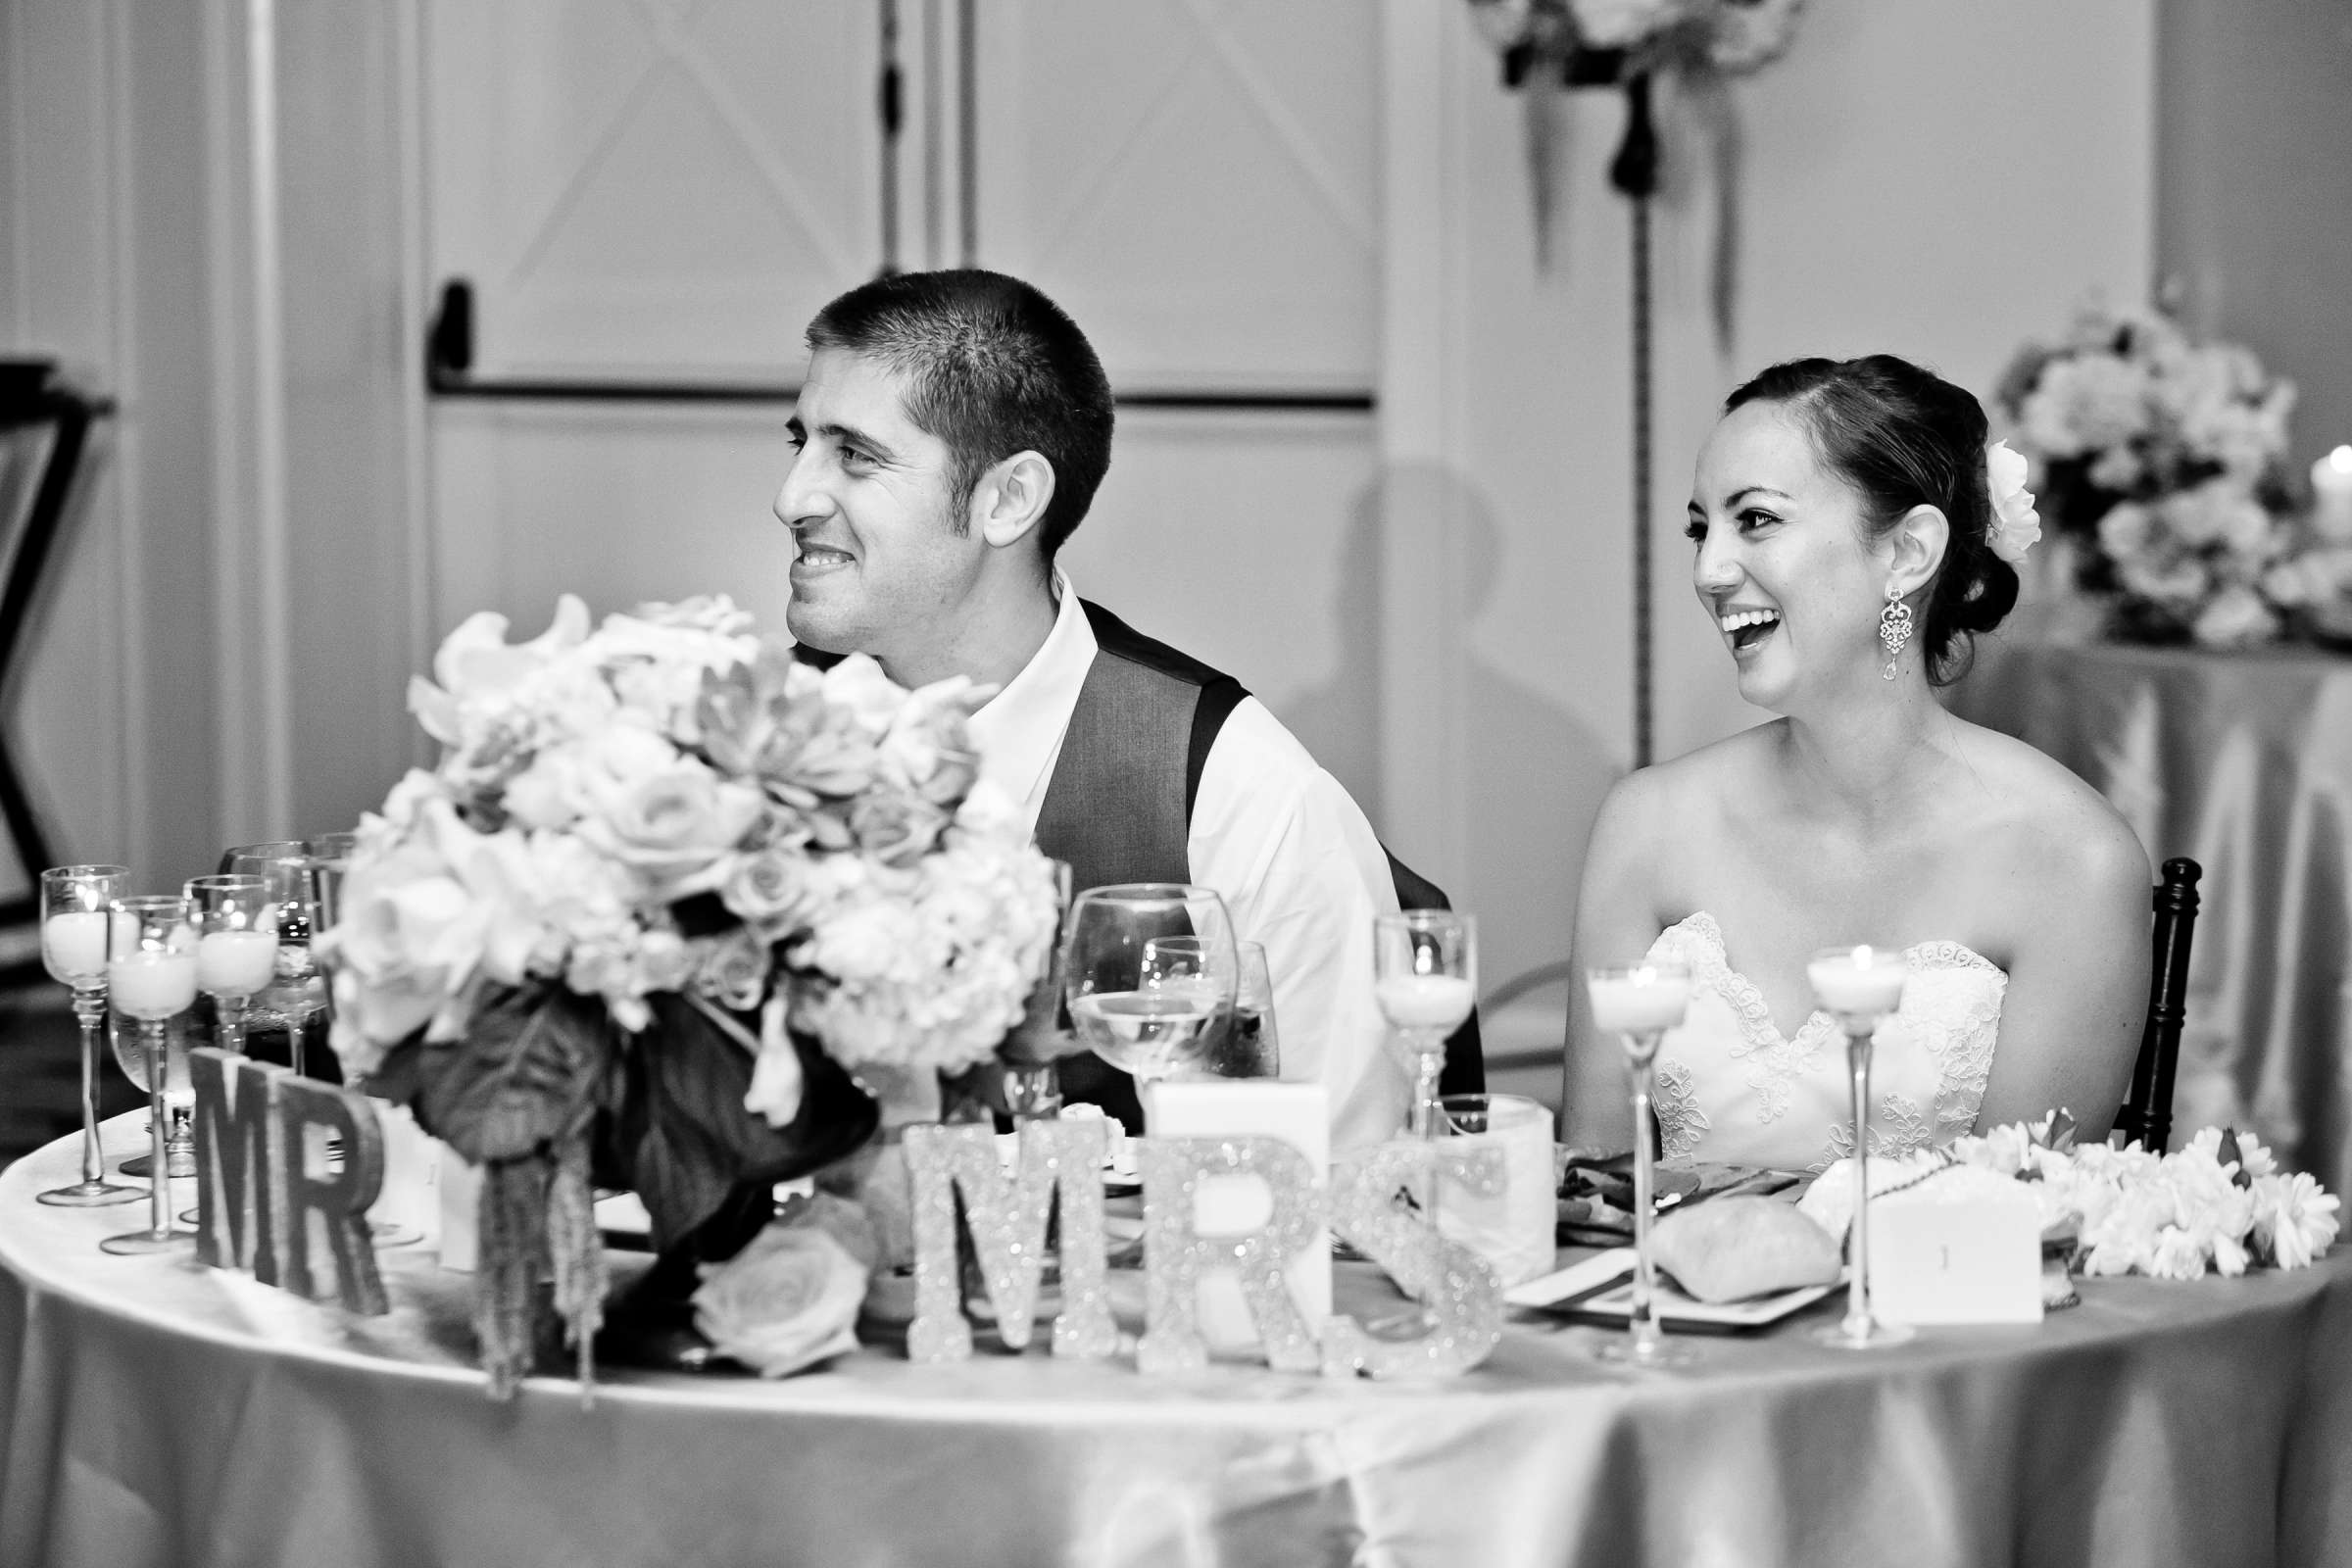 Estancia Wedding coordinated by Evelyn Francesca Events & Design, Megan and Patrick Wedding Photo #48 by True Photography